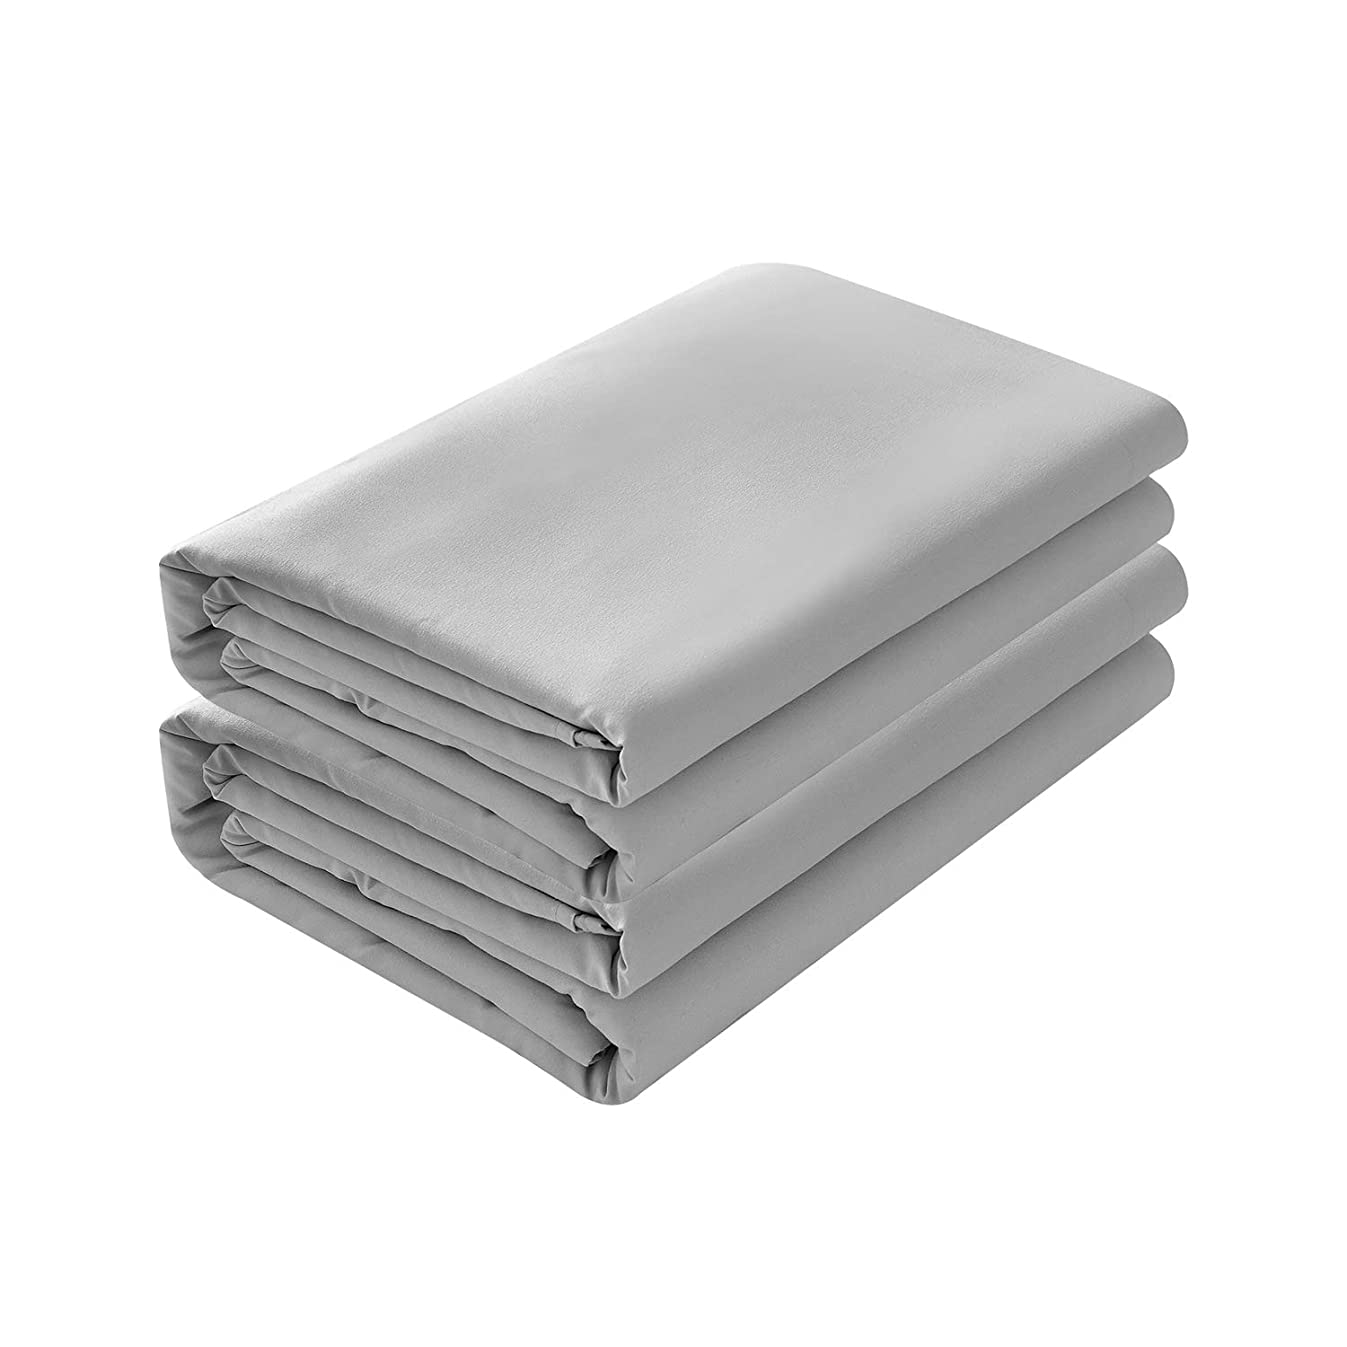 BASIC CHOICE 2-Pack Flat Sheets, Breathable 2000 Series Bed Top Sheet, Wrinkle, Fade Resistant - Queen, Gray